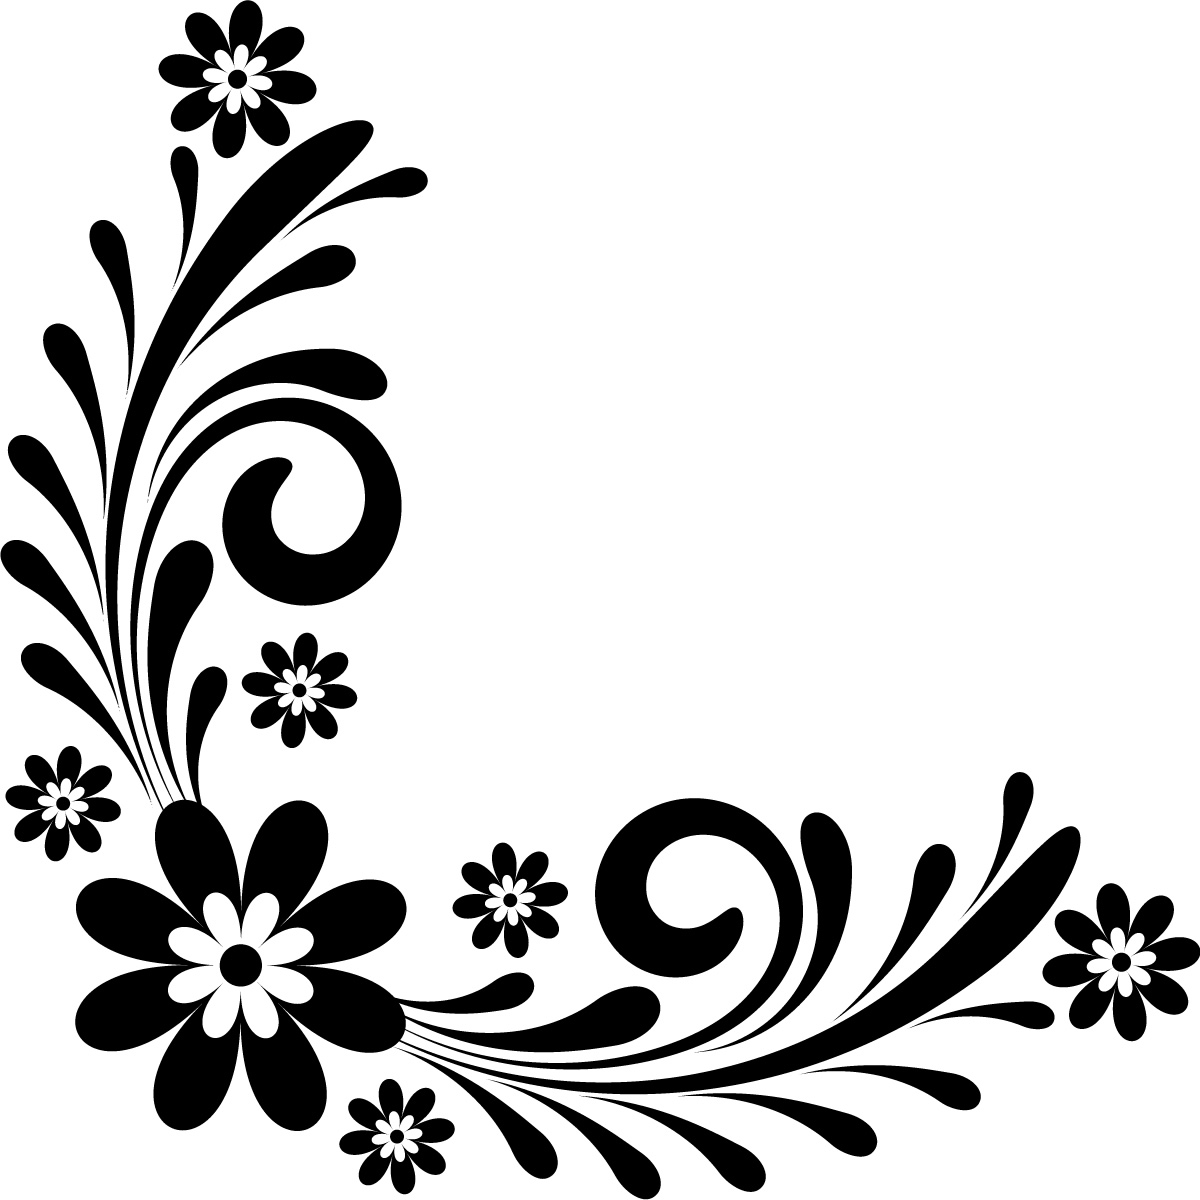 Border Design Black And White Clipart